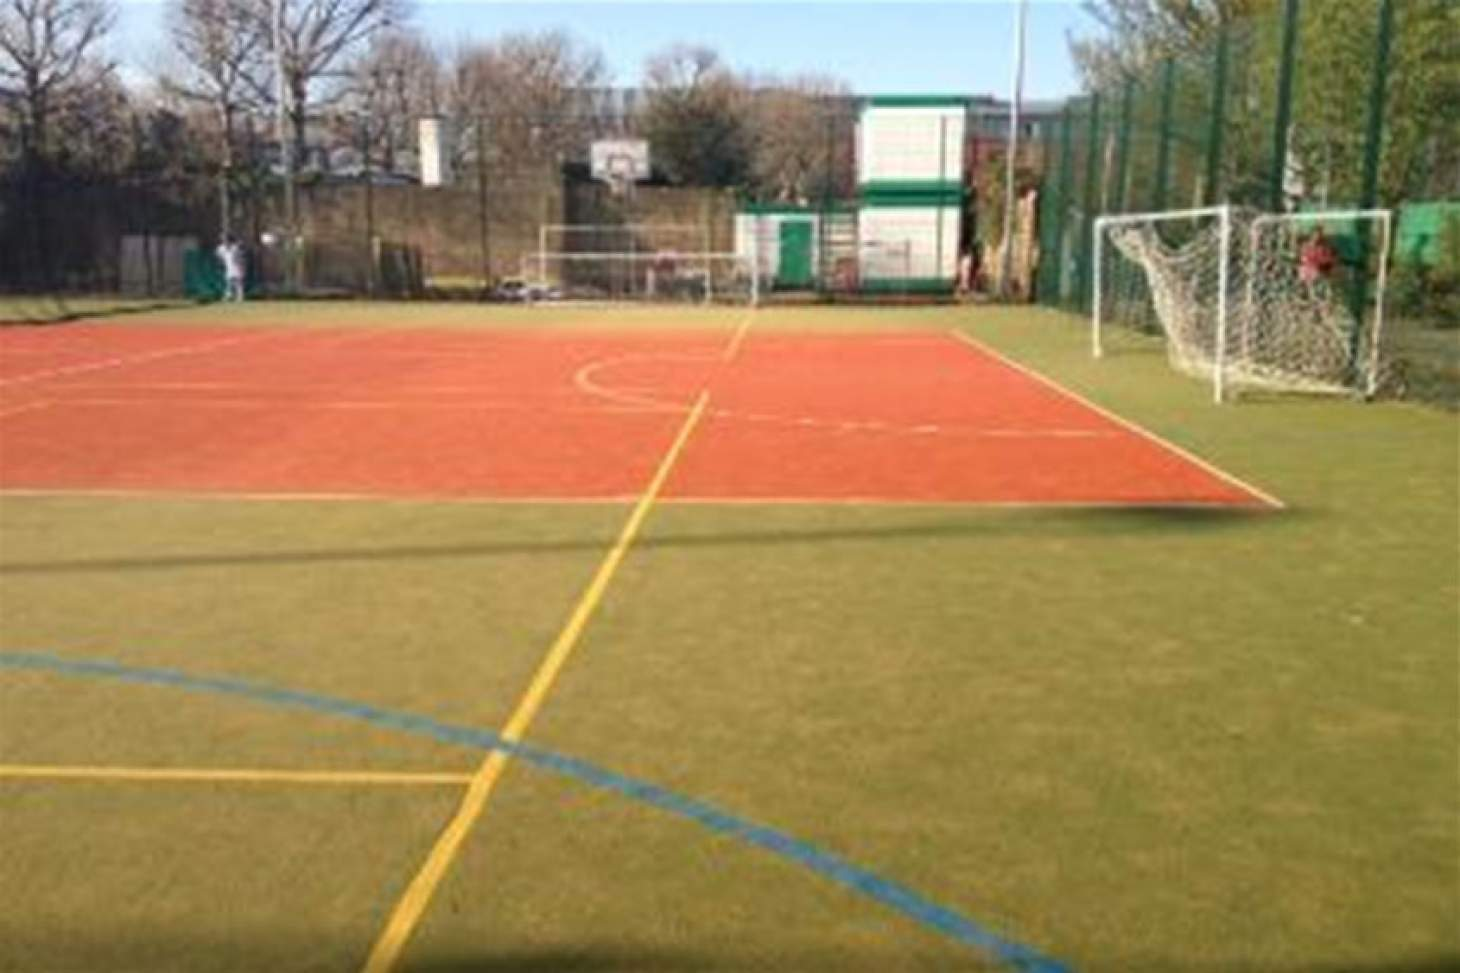 Westbourne Park Astroturf 7 a side | Astroturf football pitch